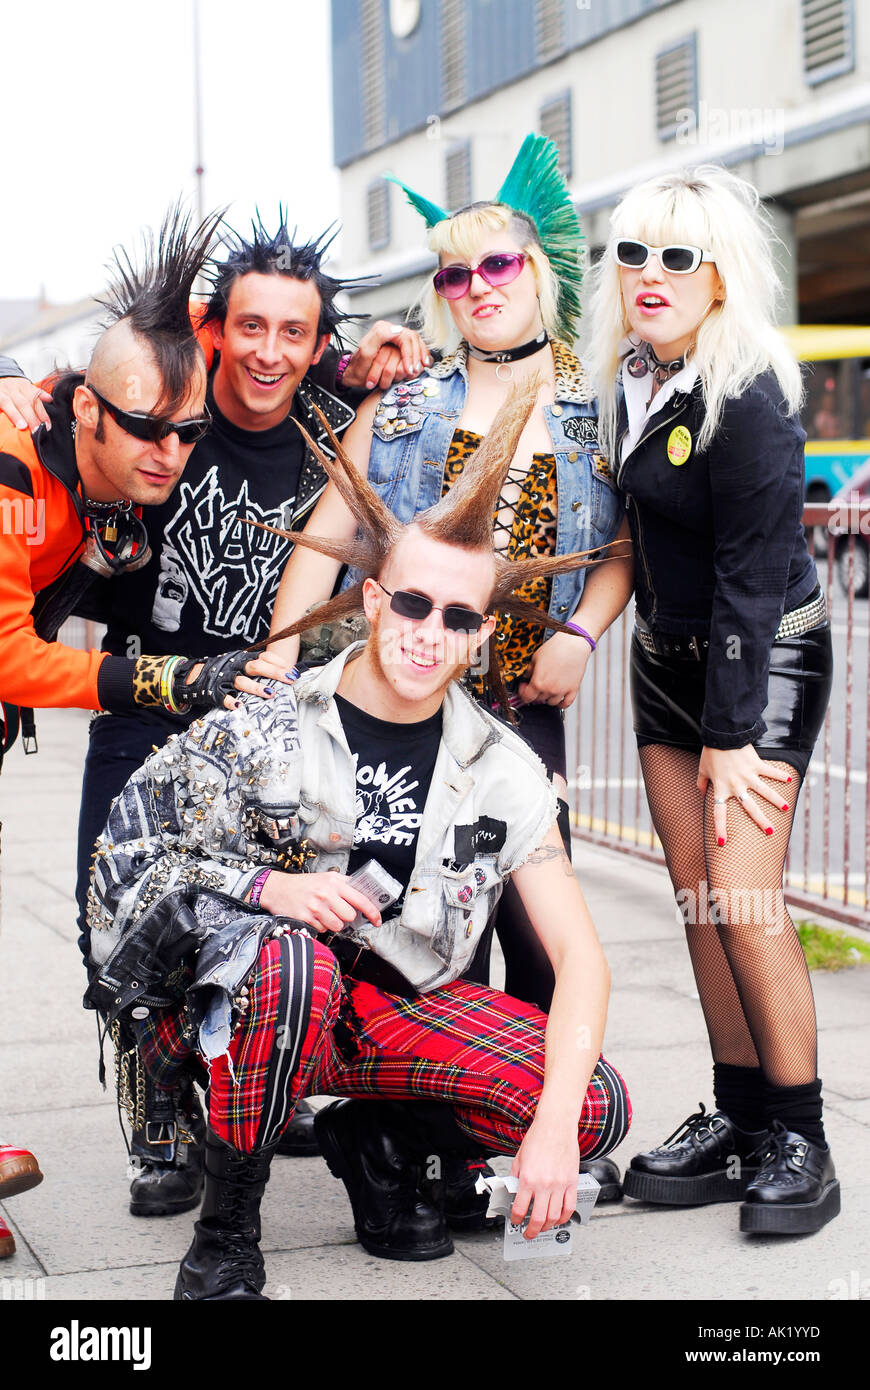 Punk Rockers Arrive For The Wasted Festival In Blackpool